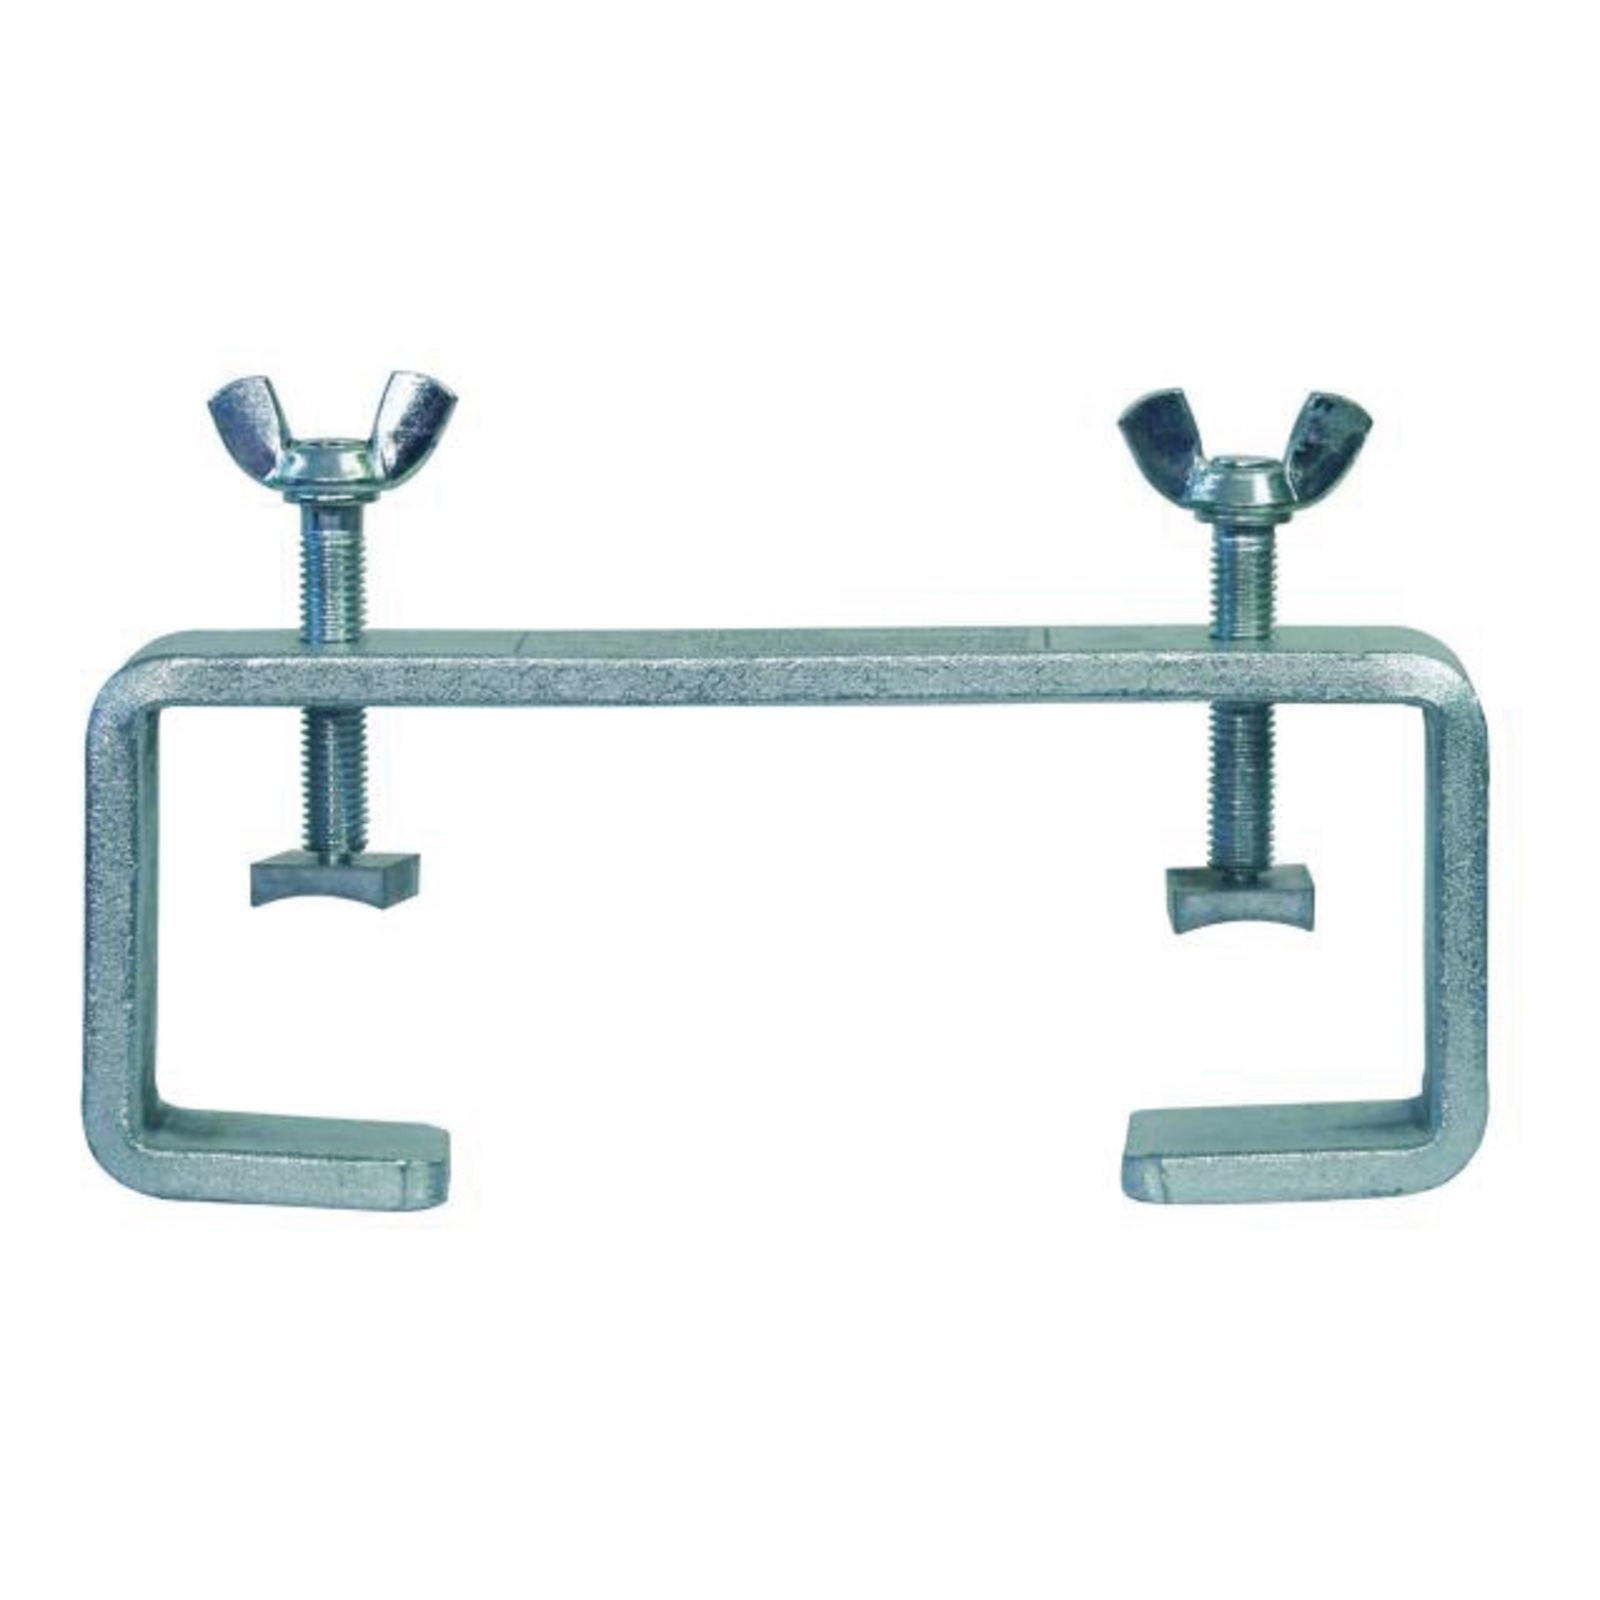 Eurolite Pipe Clamp C-Join Hook 19cm Produktbillede